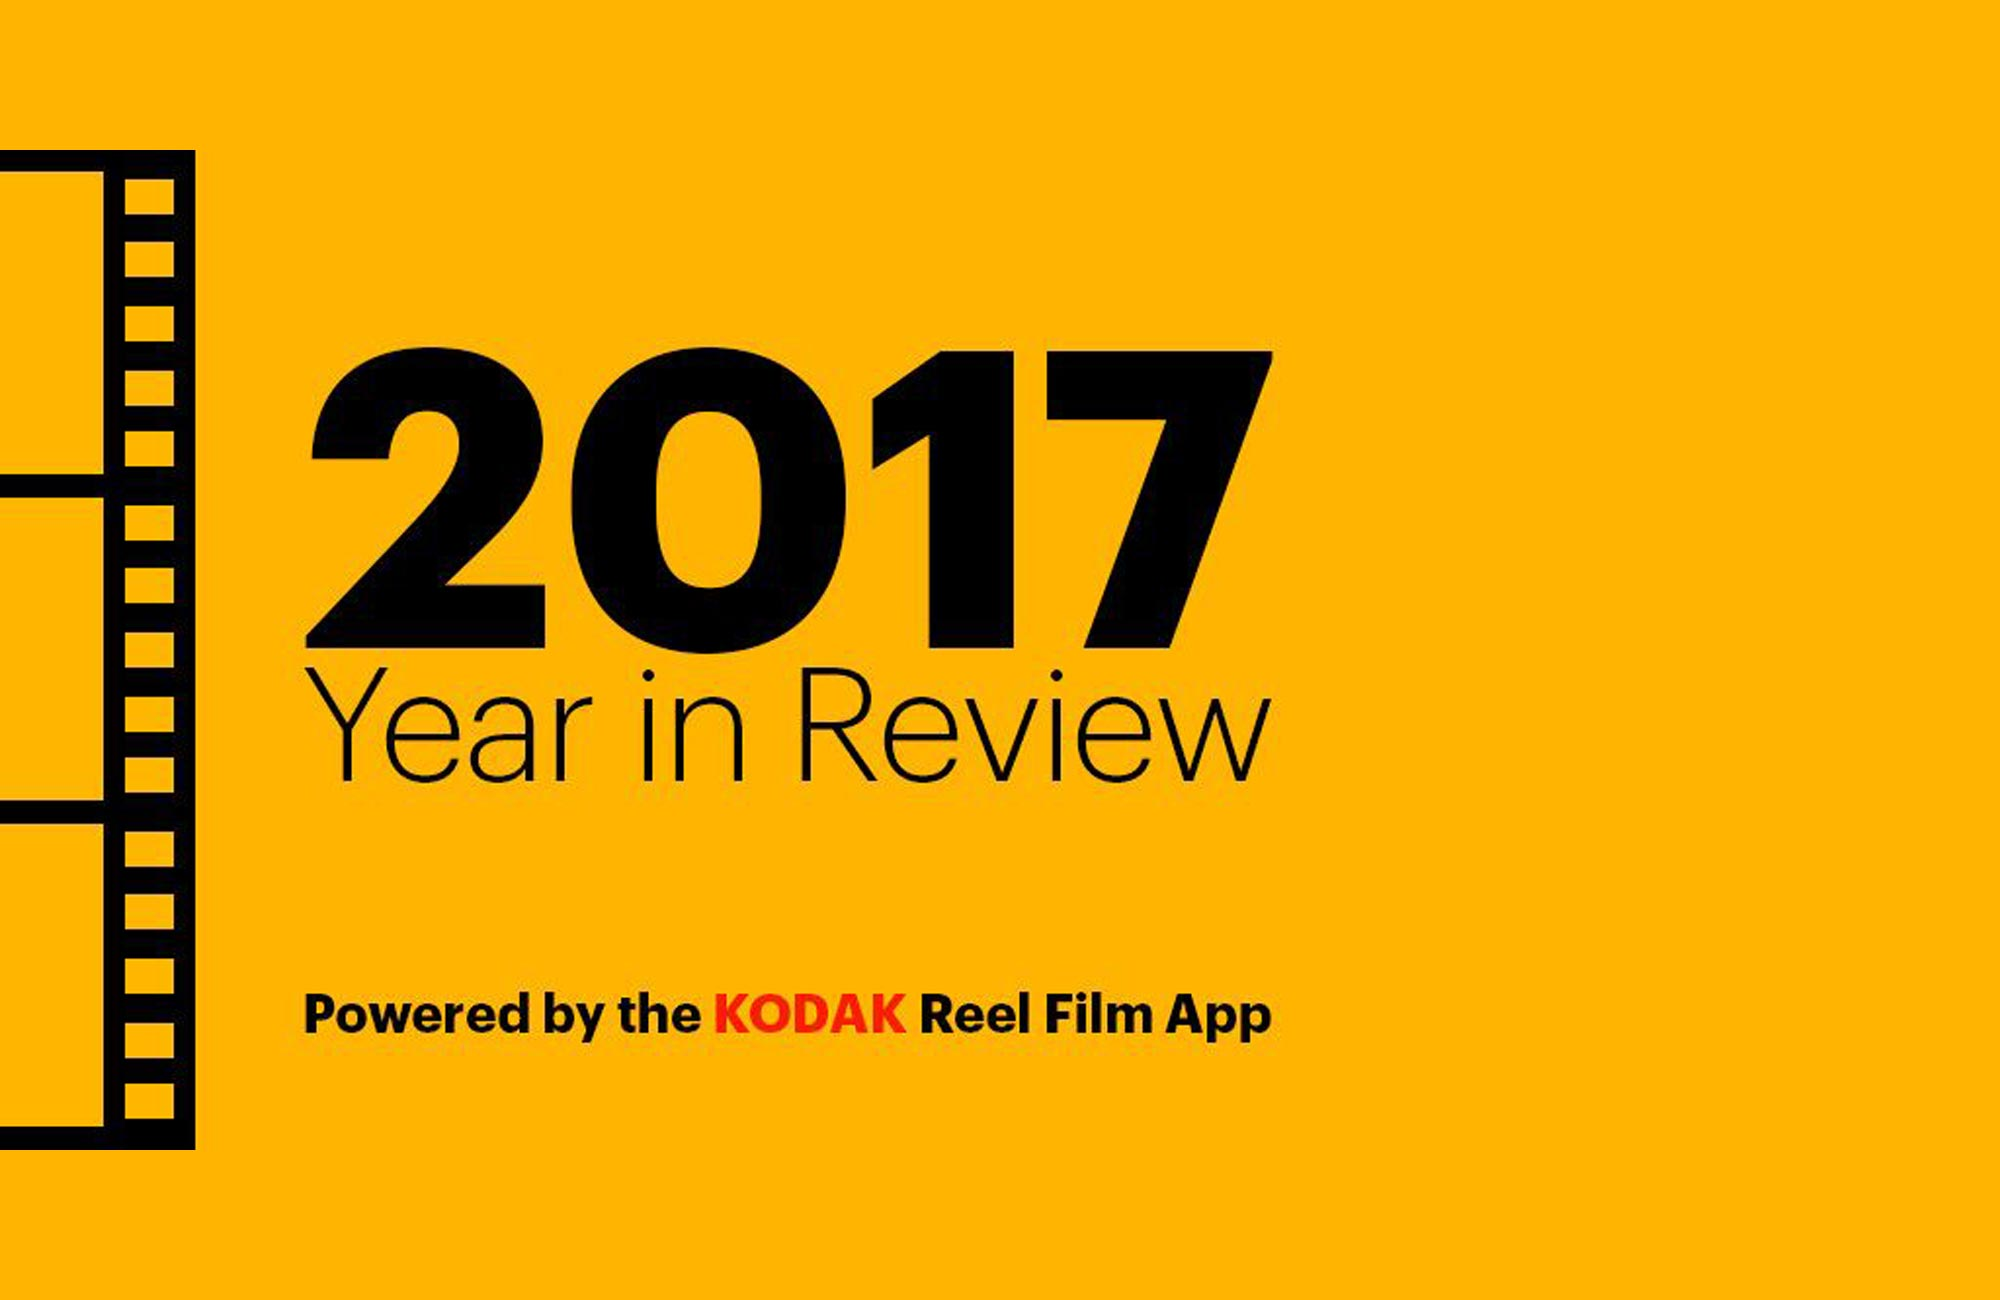 KODAK Reel Film Awards